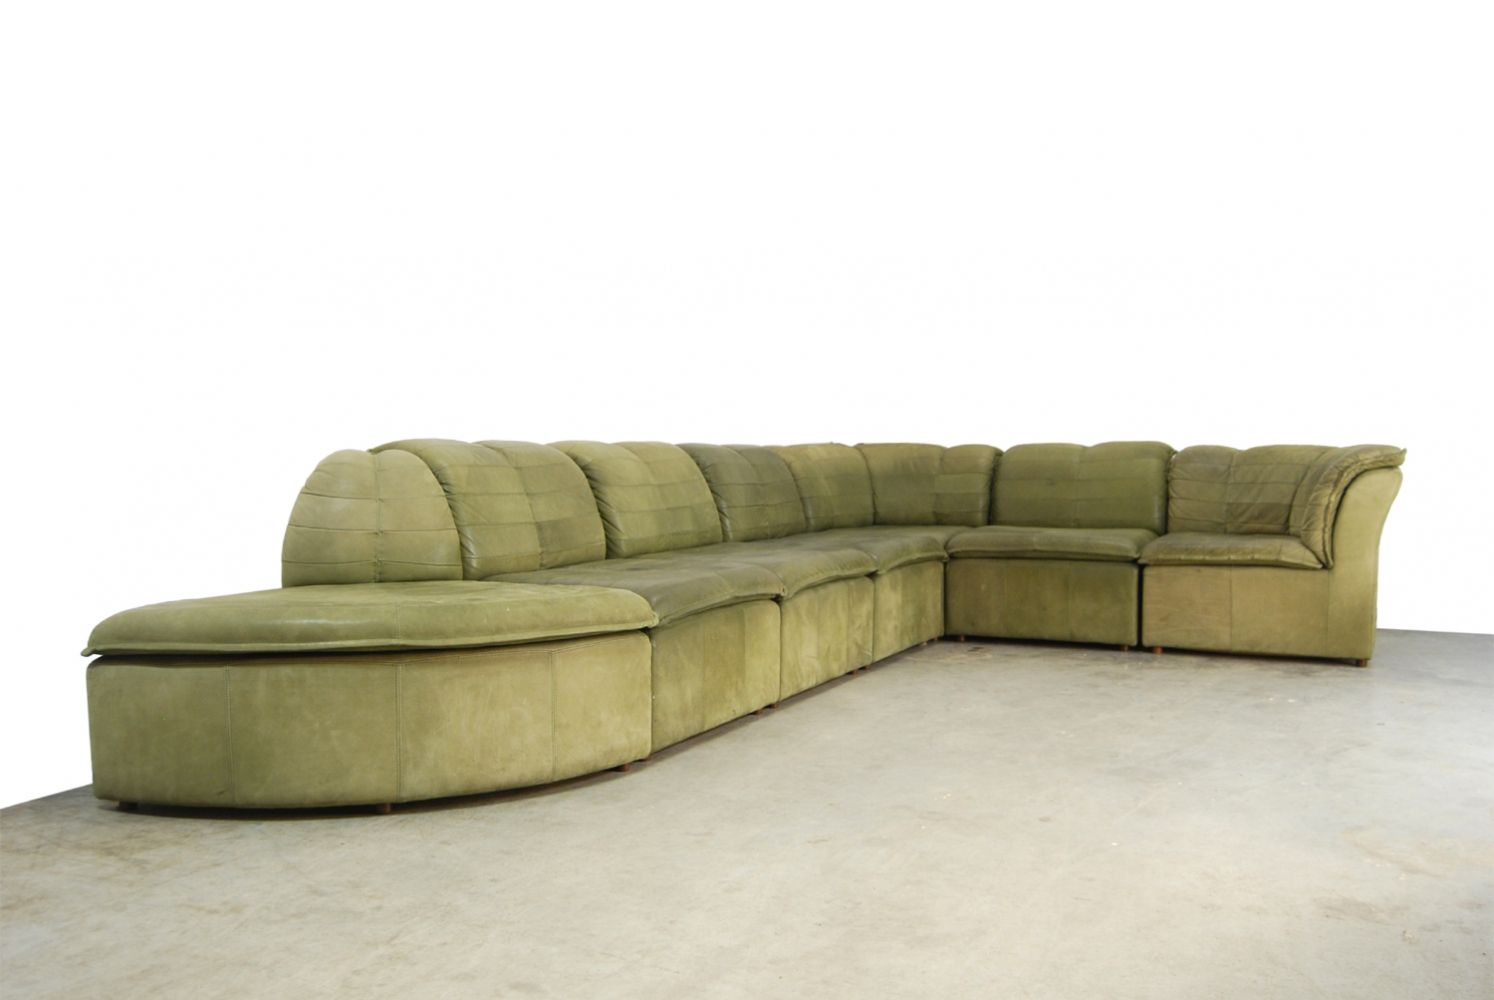 Brilliant Rare Mid Century Modular Nubuck Leather Sofa By Laauser Ocoug Best Dining Table And Chair Ideas Images Ocougorg